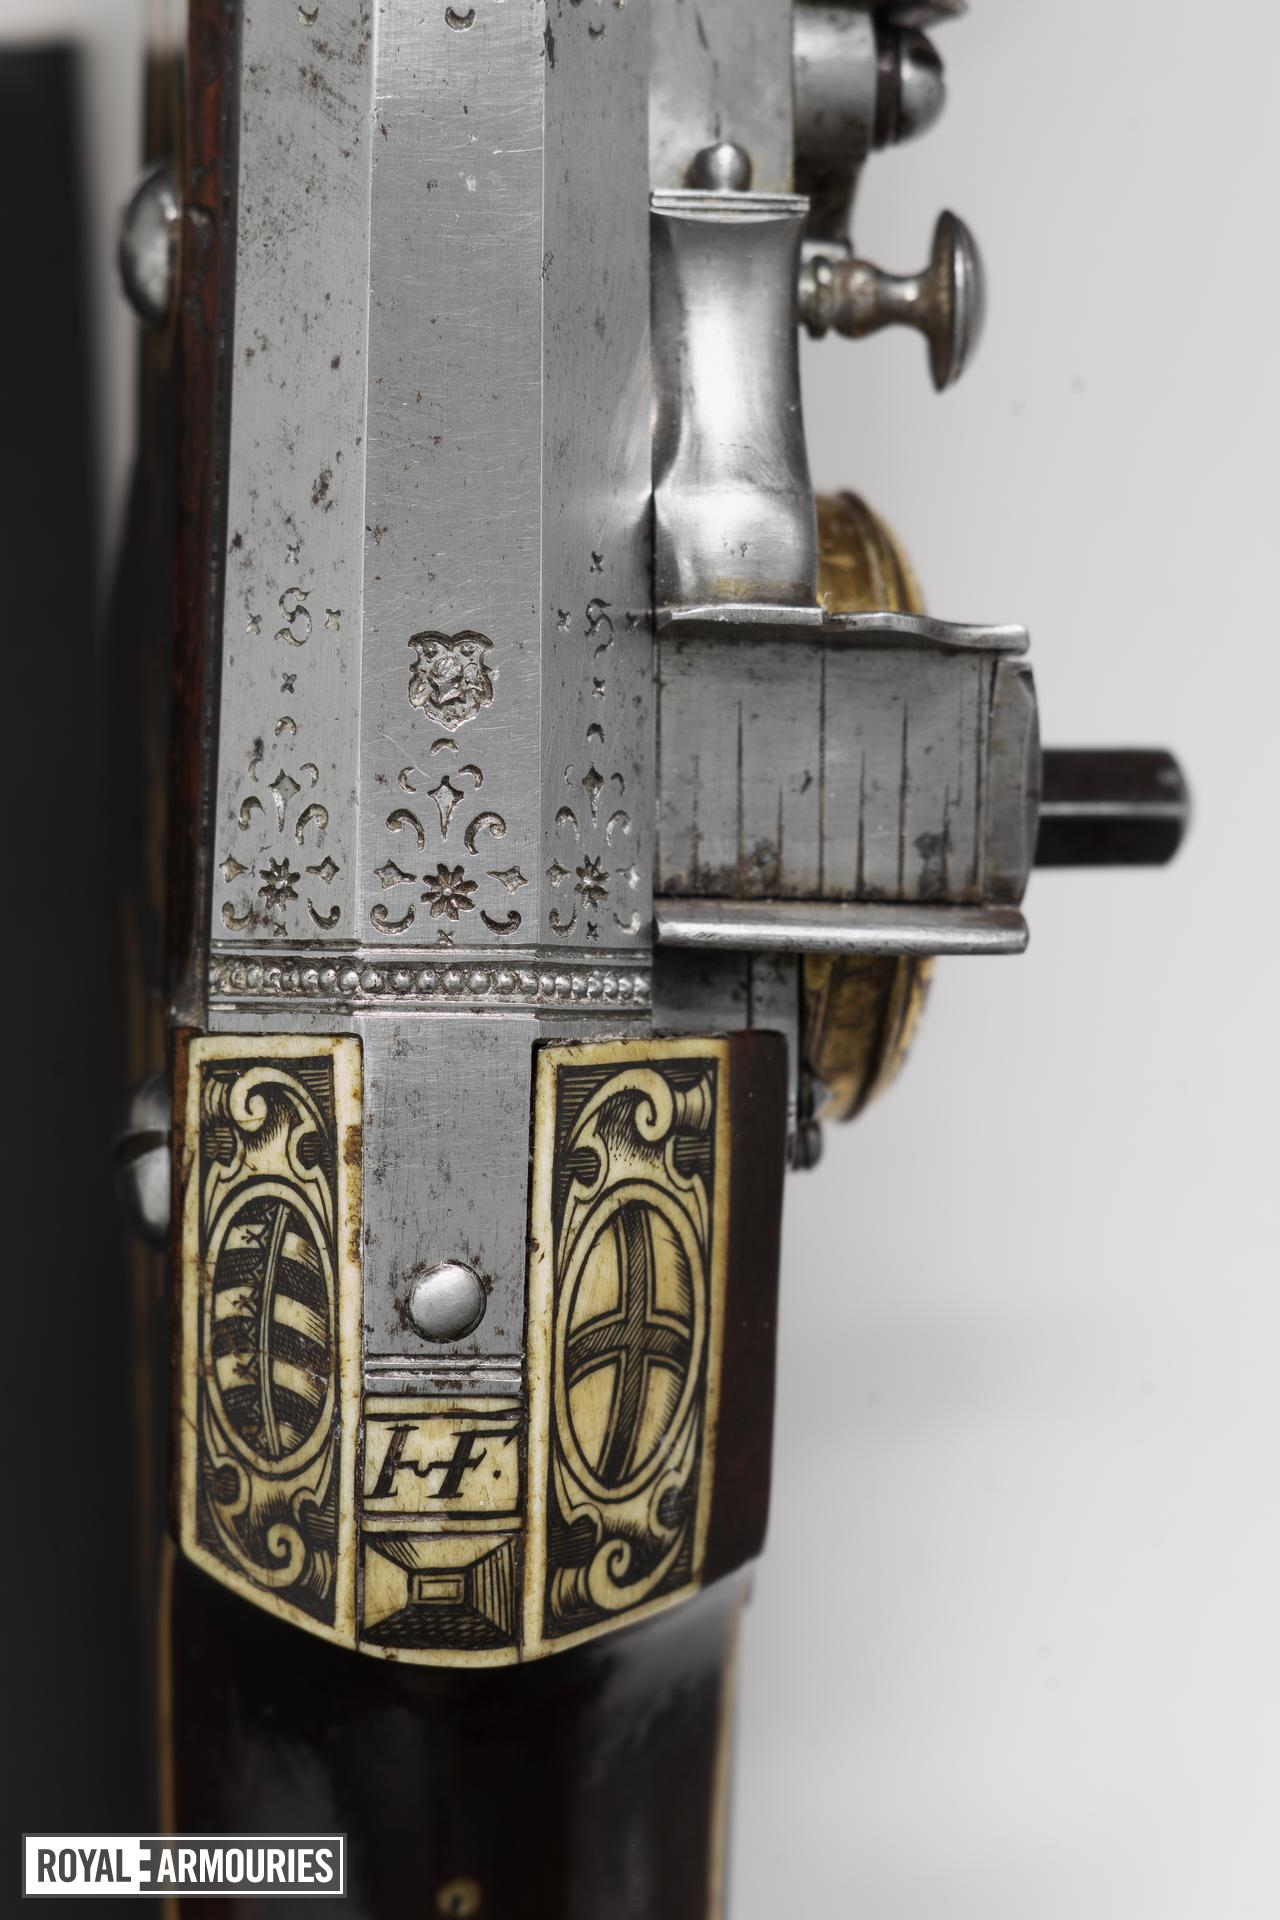 Wheellock Muzzle loader holster pistol - By Christoph Trechsler For the guard of the Elector Christian II. One of a pair, see XII.1254